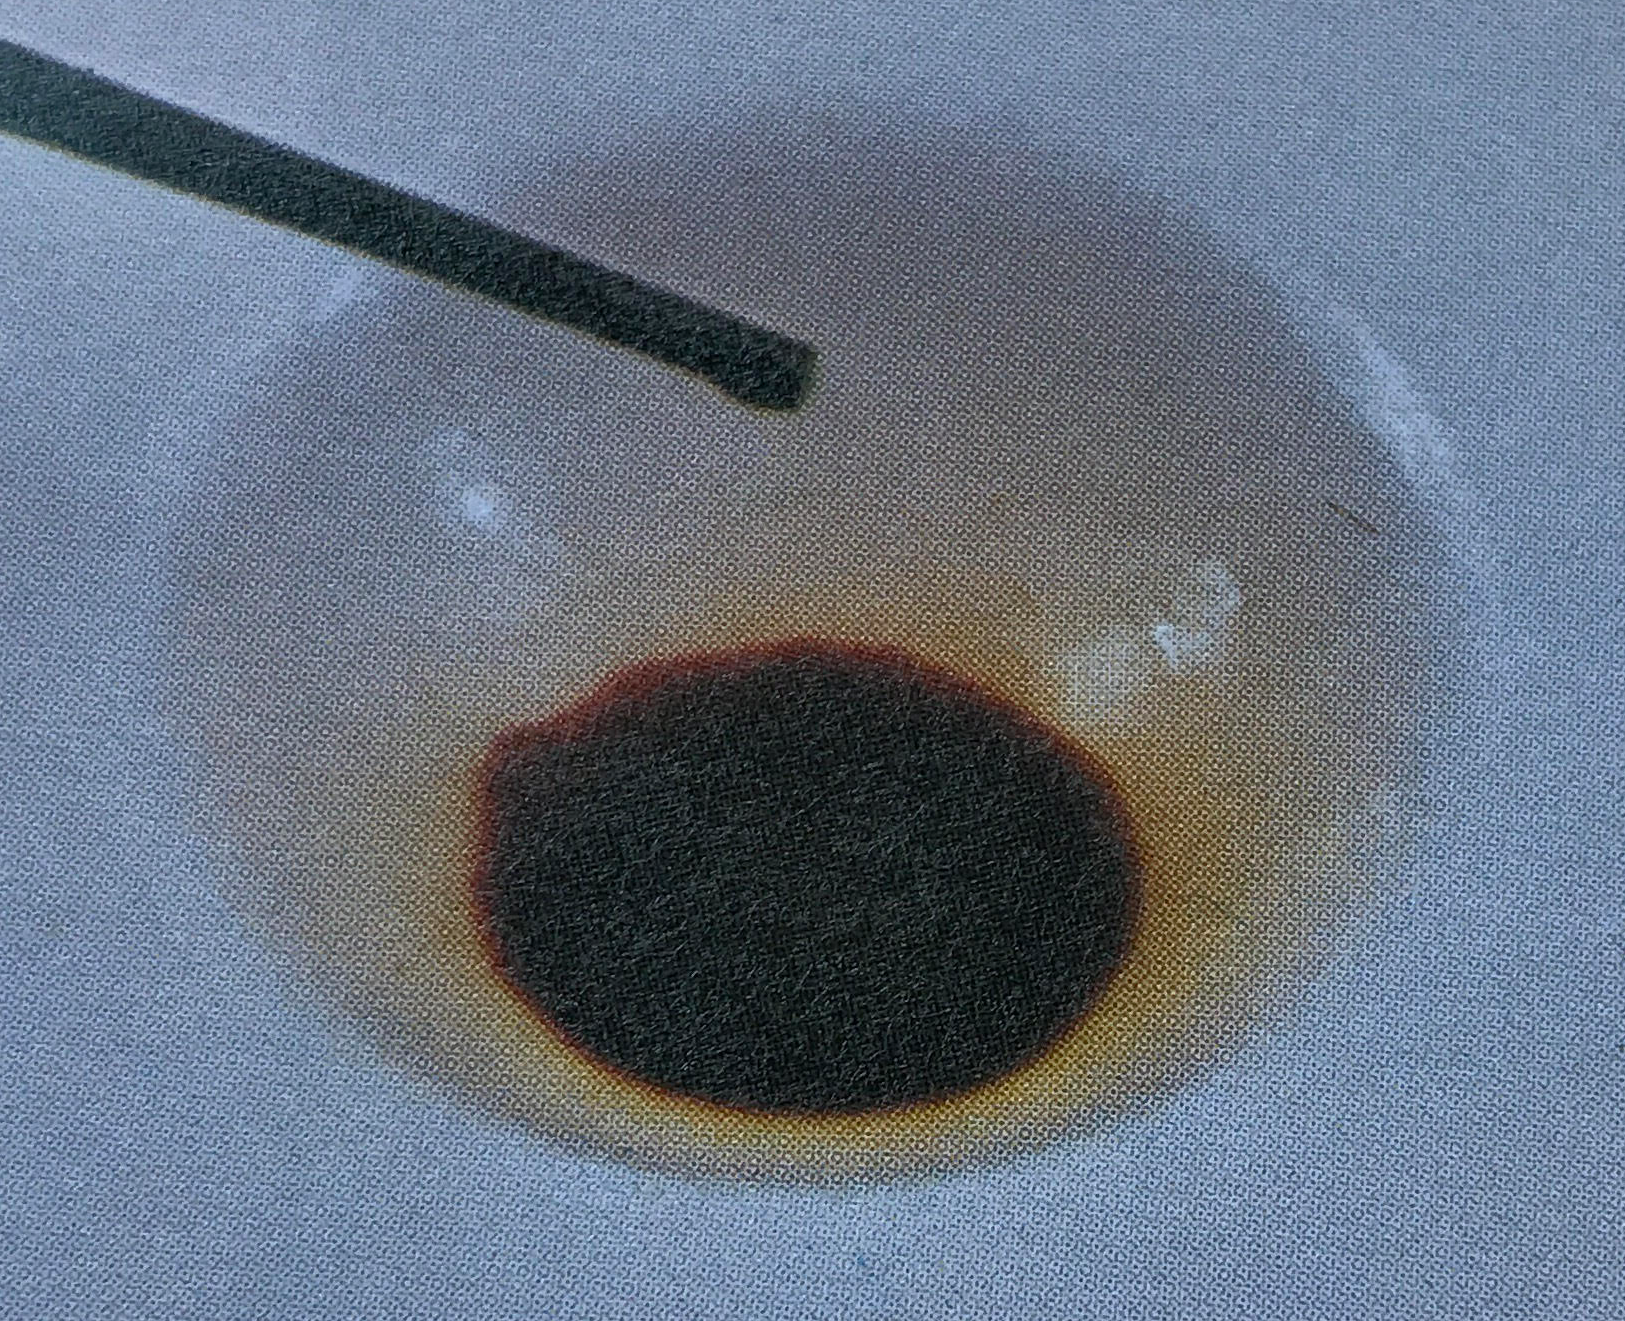 A depression filled with a deep brown liquid.